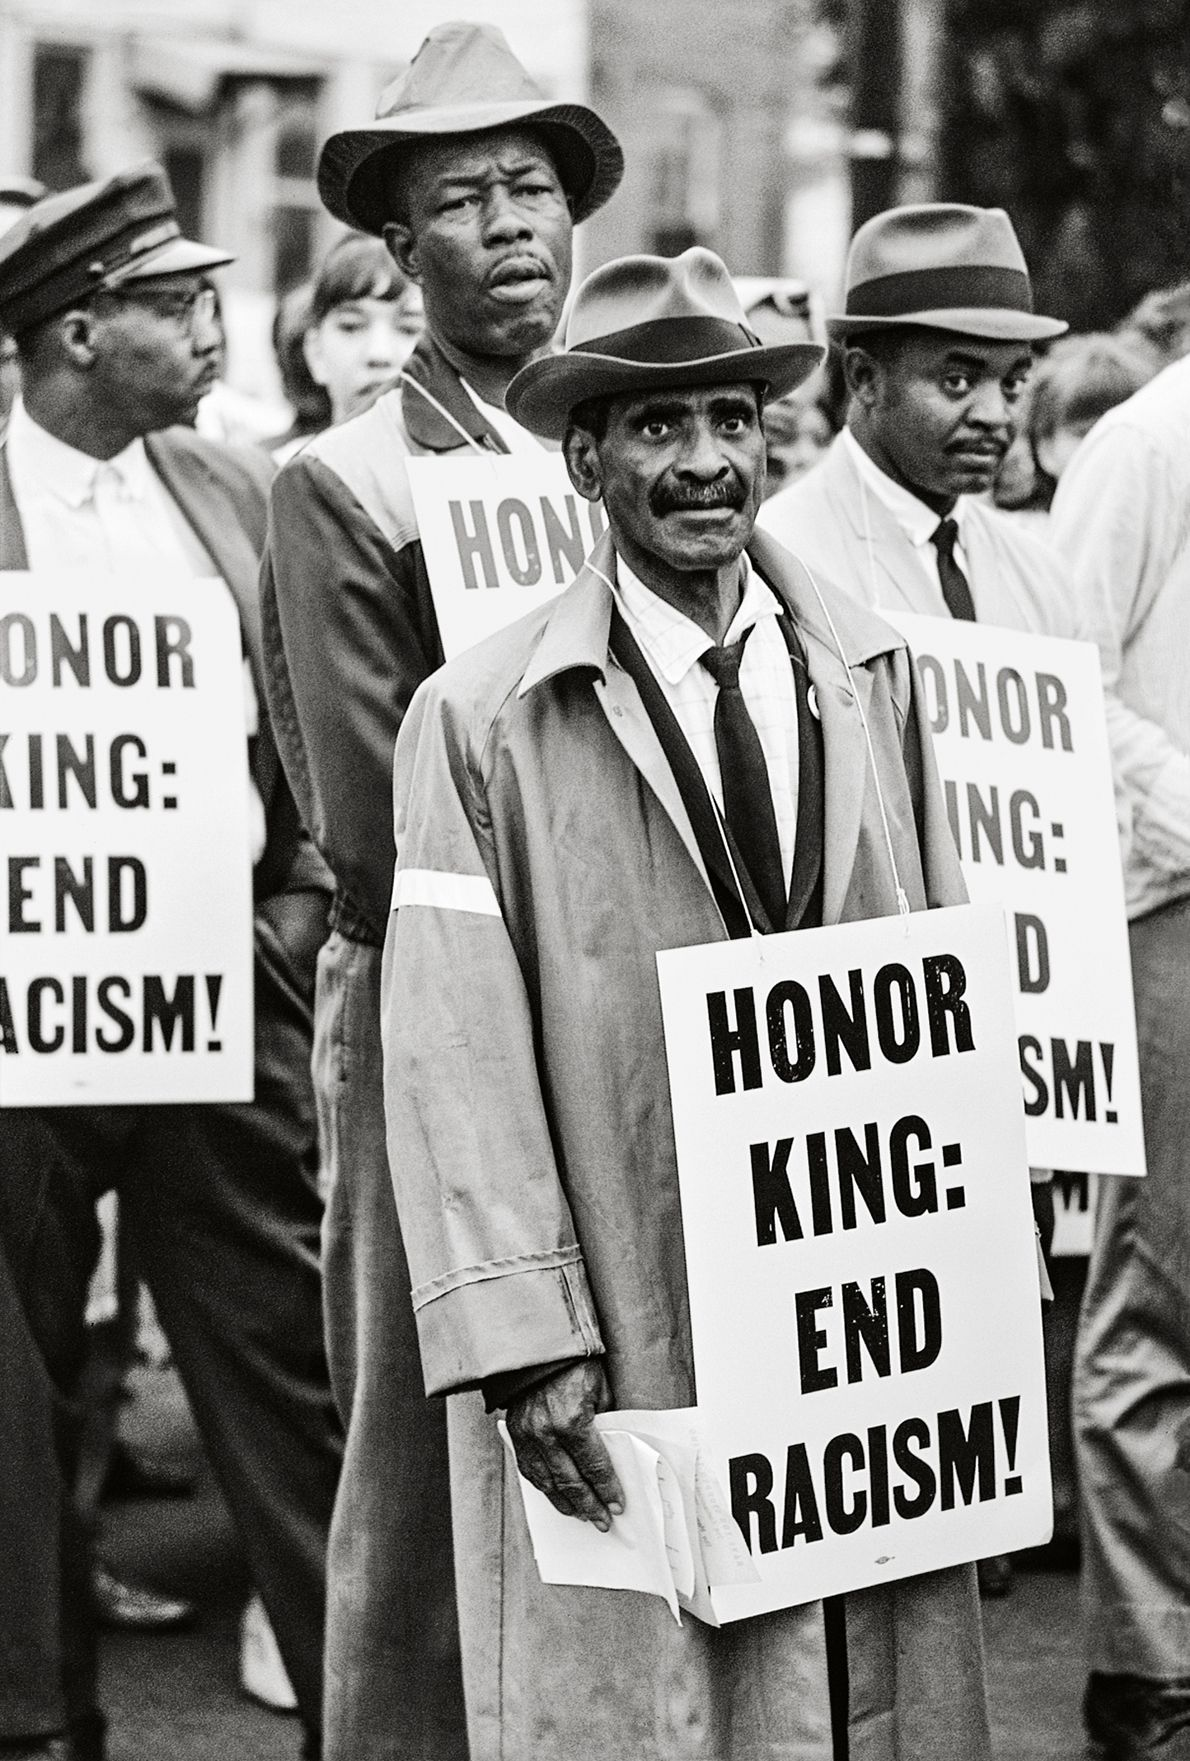 Honor King: End Racism, Memphis, 1968, 20 x 16 Inches, Silver Gelatin Photograph, Edition of 25